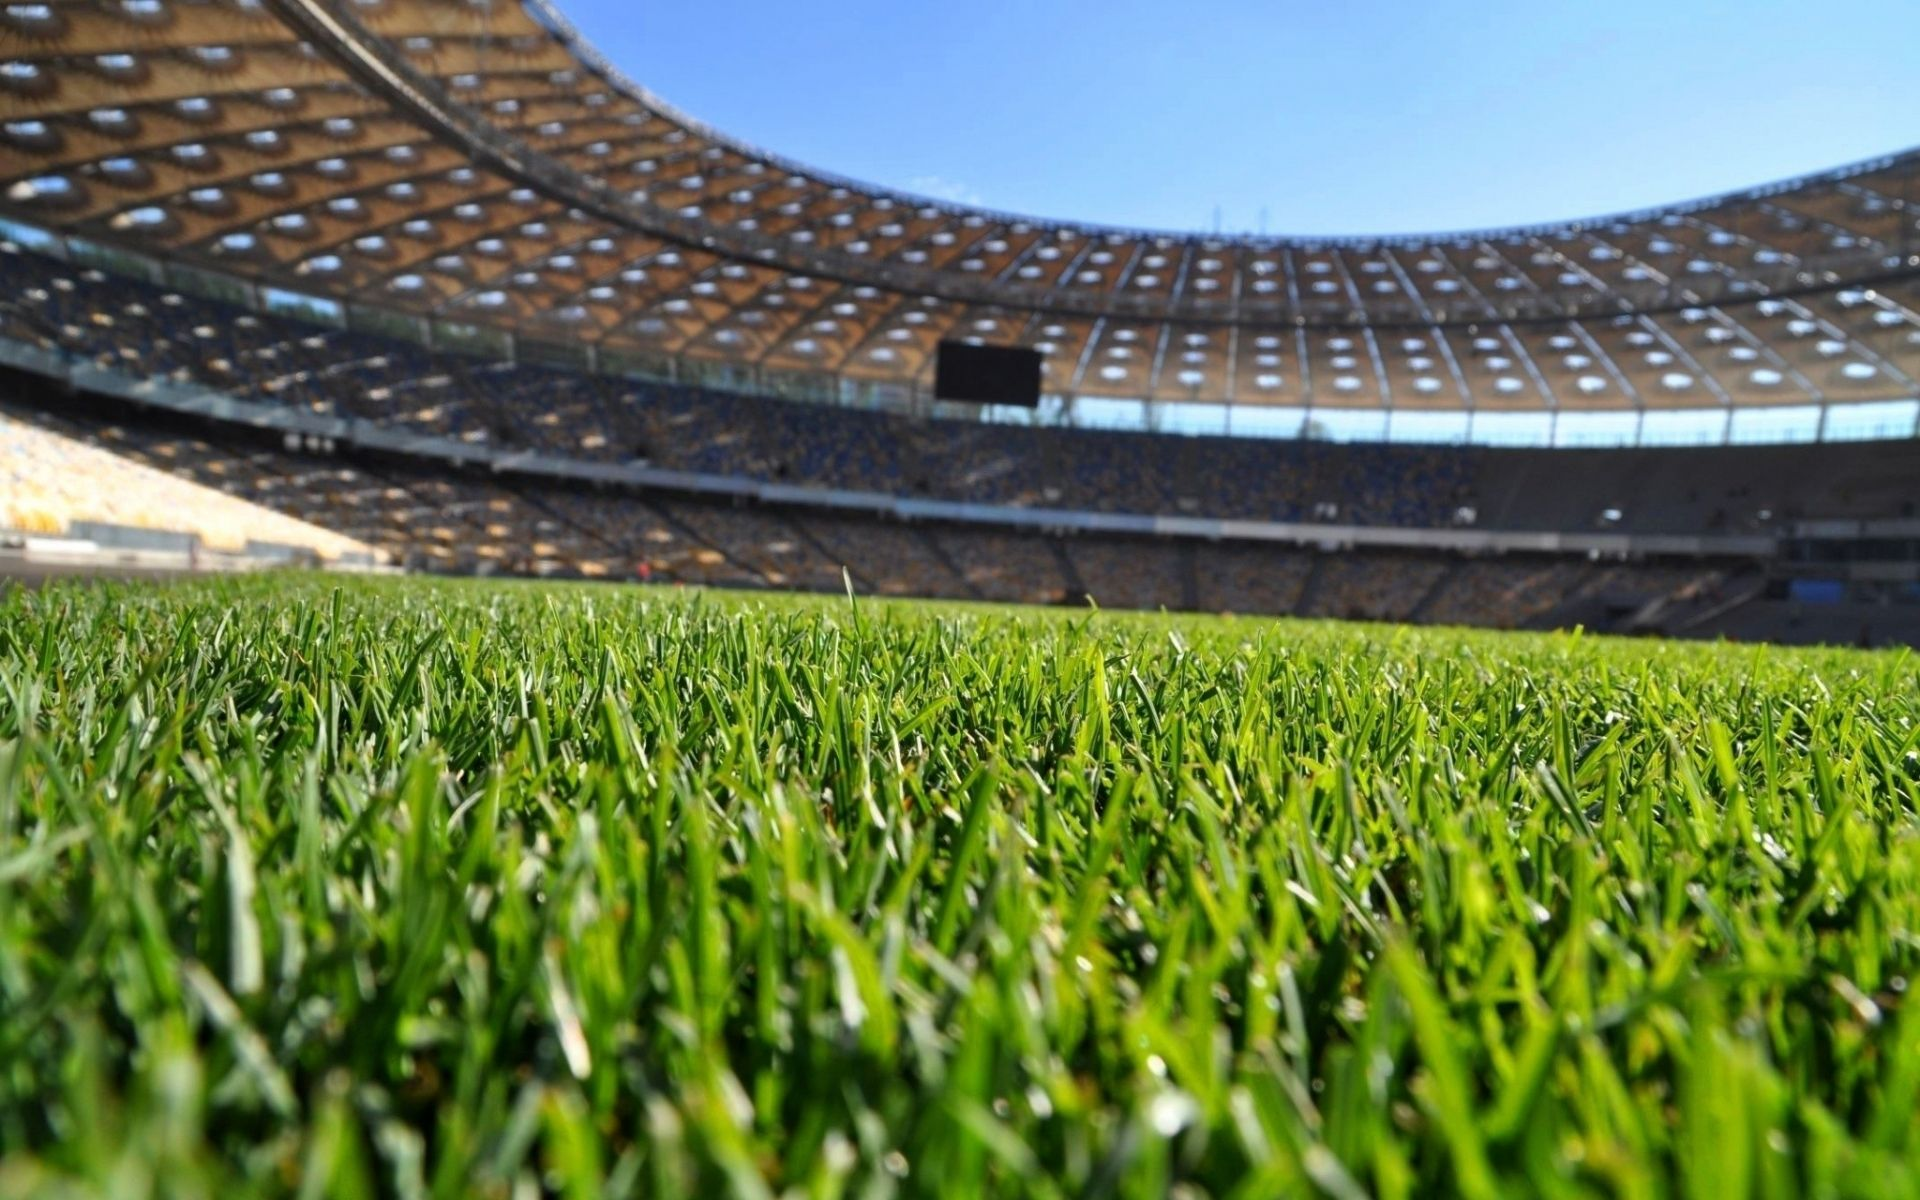 Image for soccer field cool wallpapers twilight pinterest wallpaper sports wallpapers and - Soccer stadium hd ...